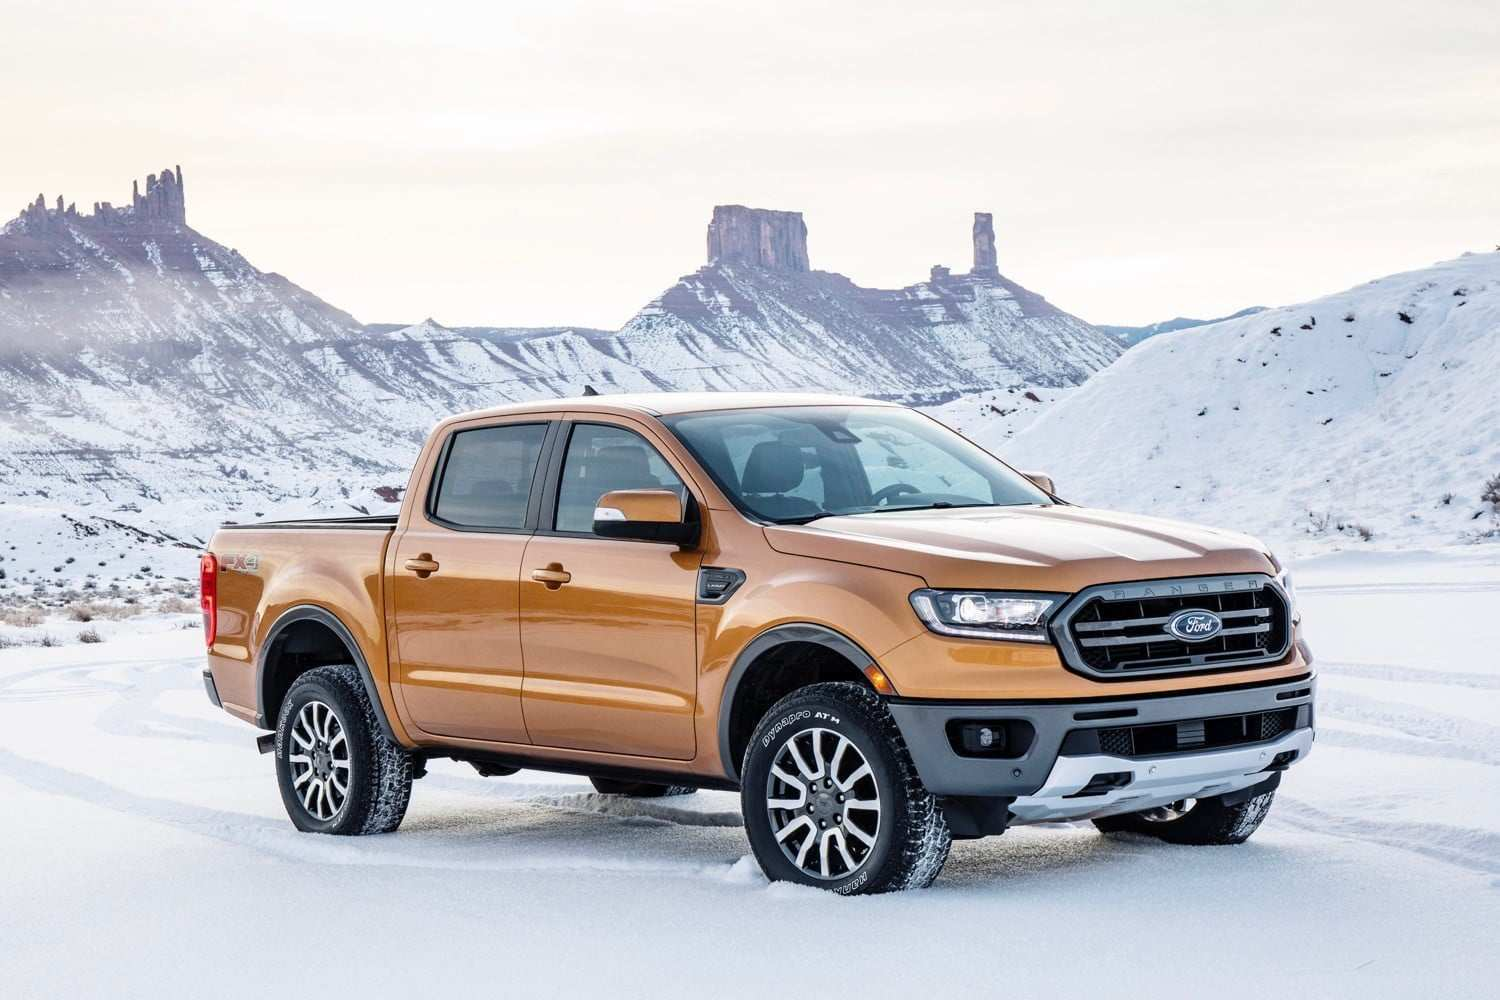 53 Great 2019 Ford Ranger Usa Price Redesign and Concept with 2019 Ford Ranger Usa Price